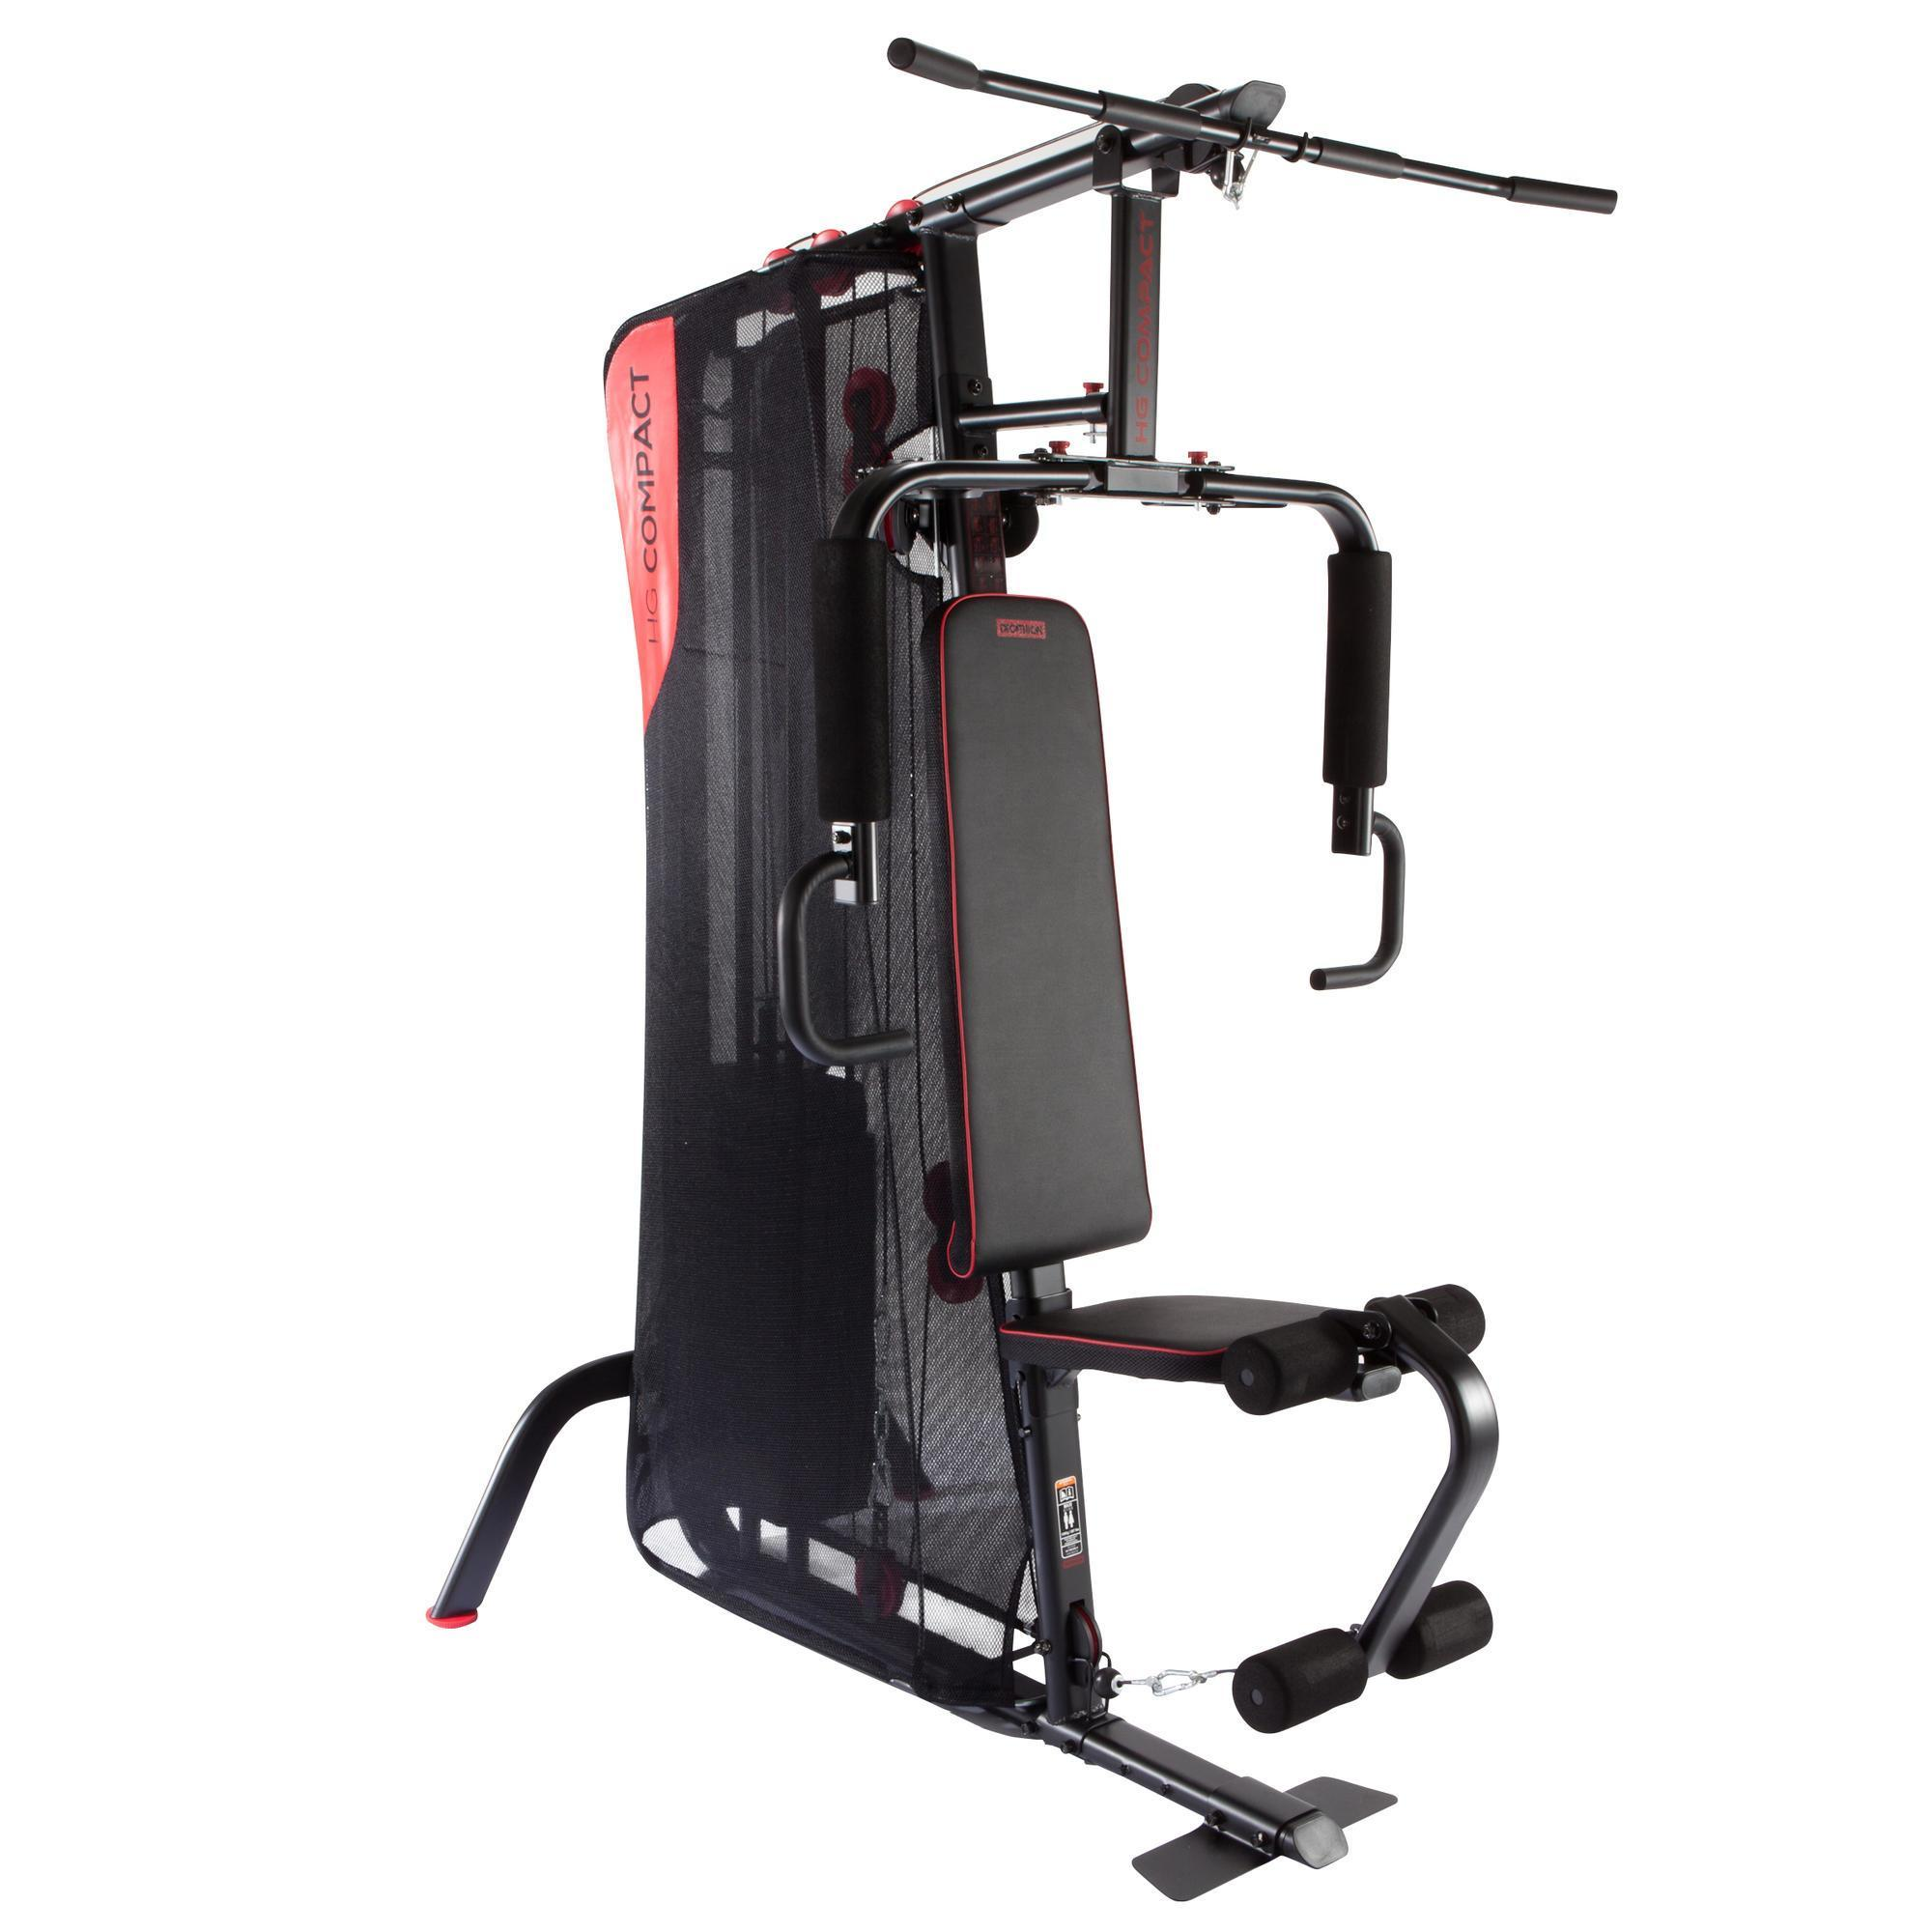 Domyos Appareil à Charge Guidée Home Gym Compact Musculation Decathlon